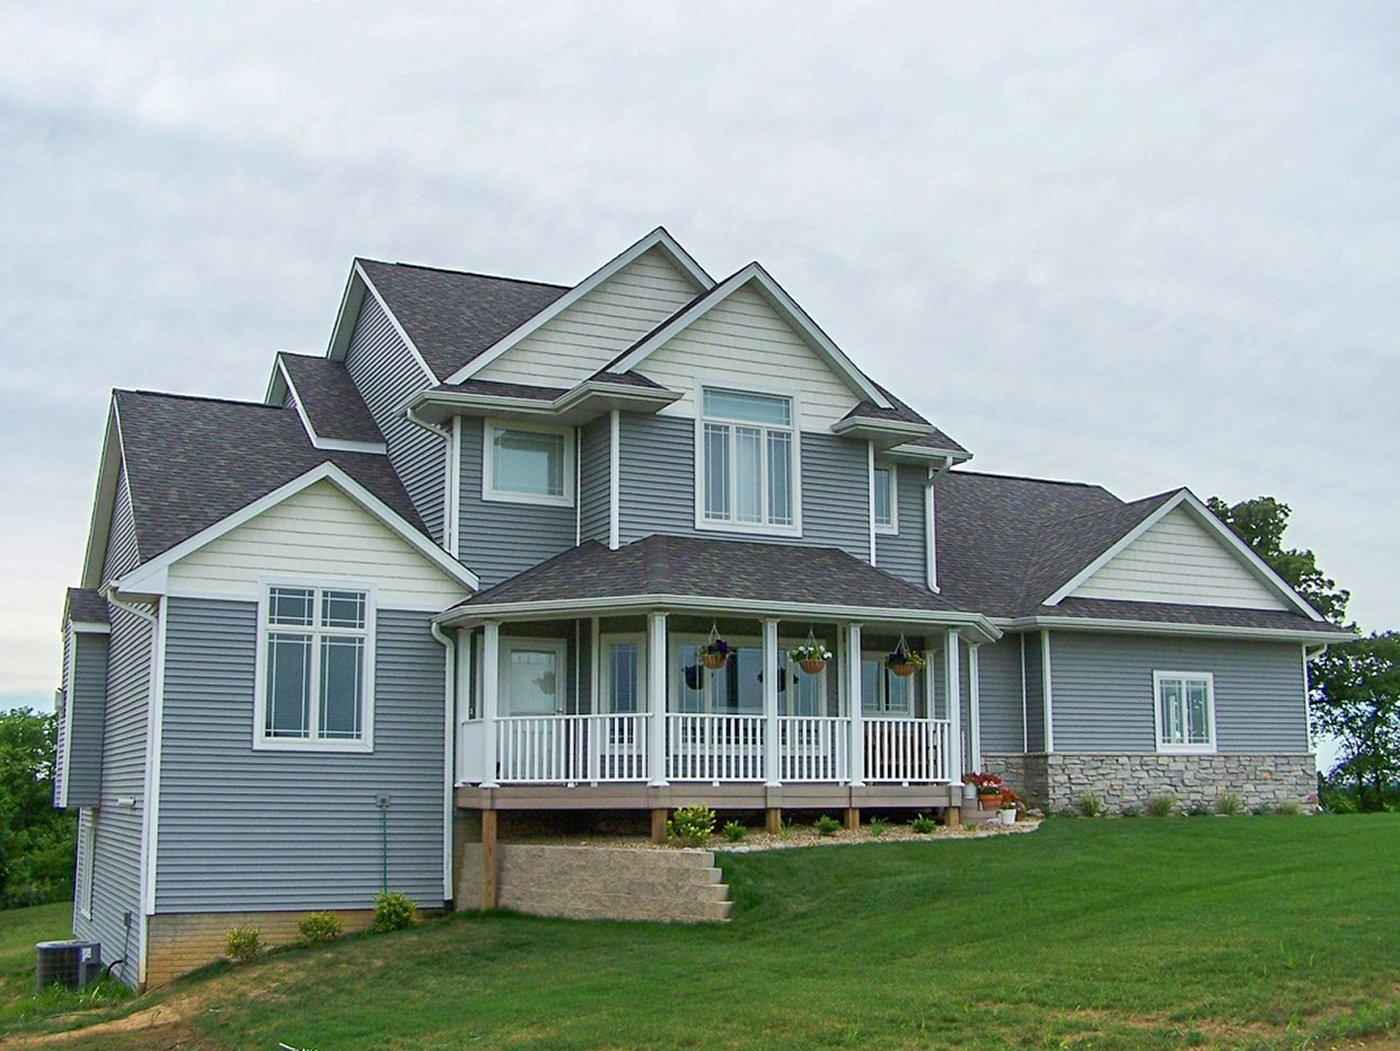 SGA Construction new home exterior view with porch and paneling